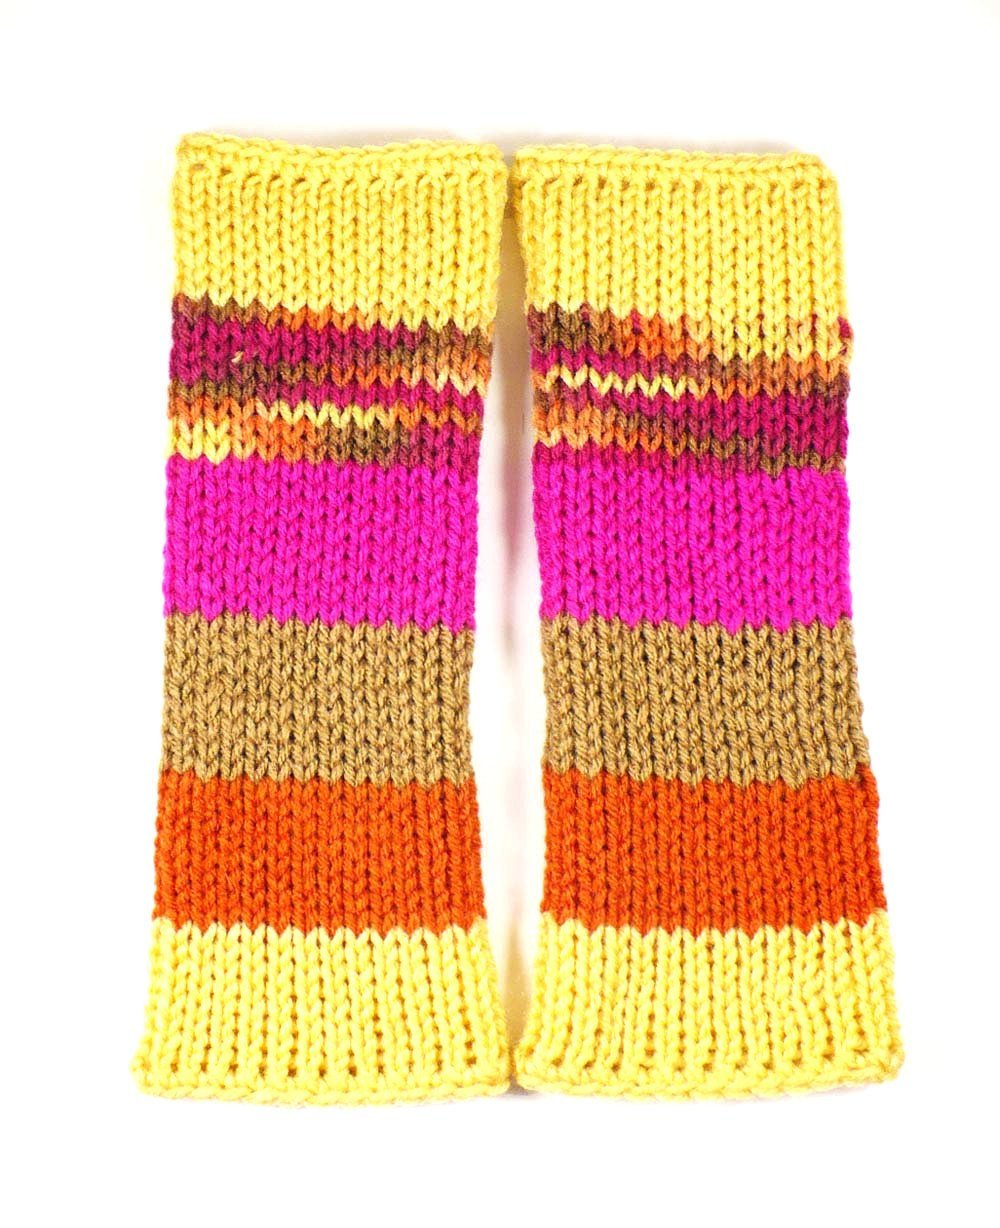 Nothingbutstring Gloves Knit Fingerless Gloves in Striped Yellow Brown Fuchsia and Orange